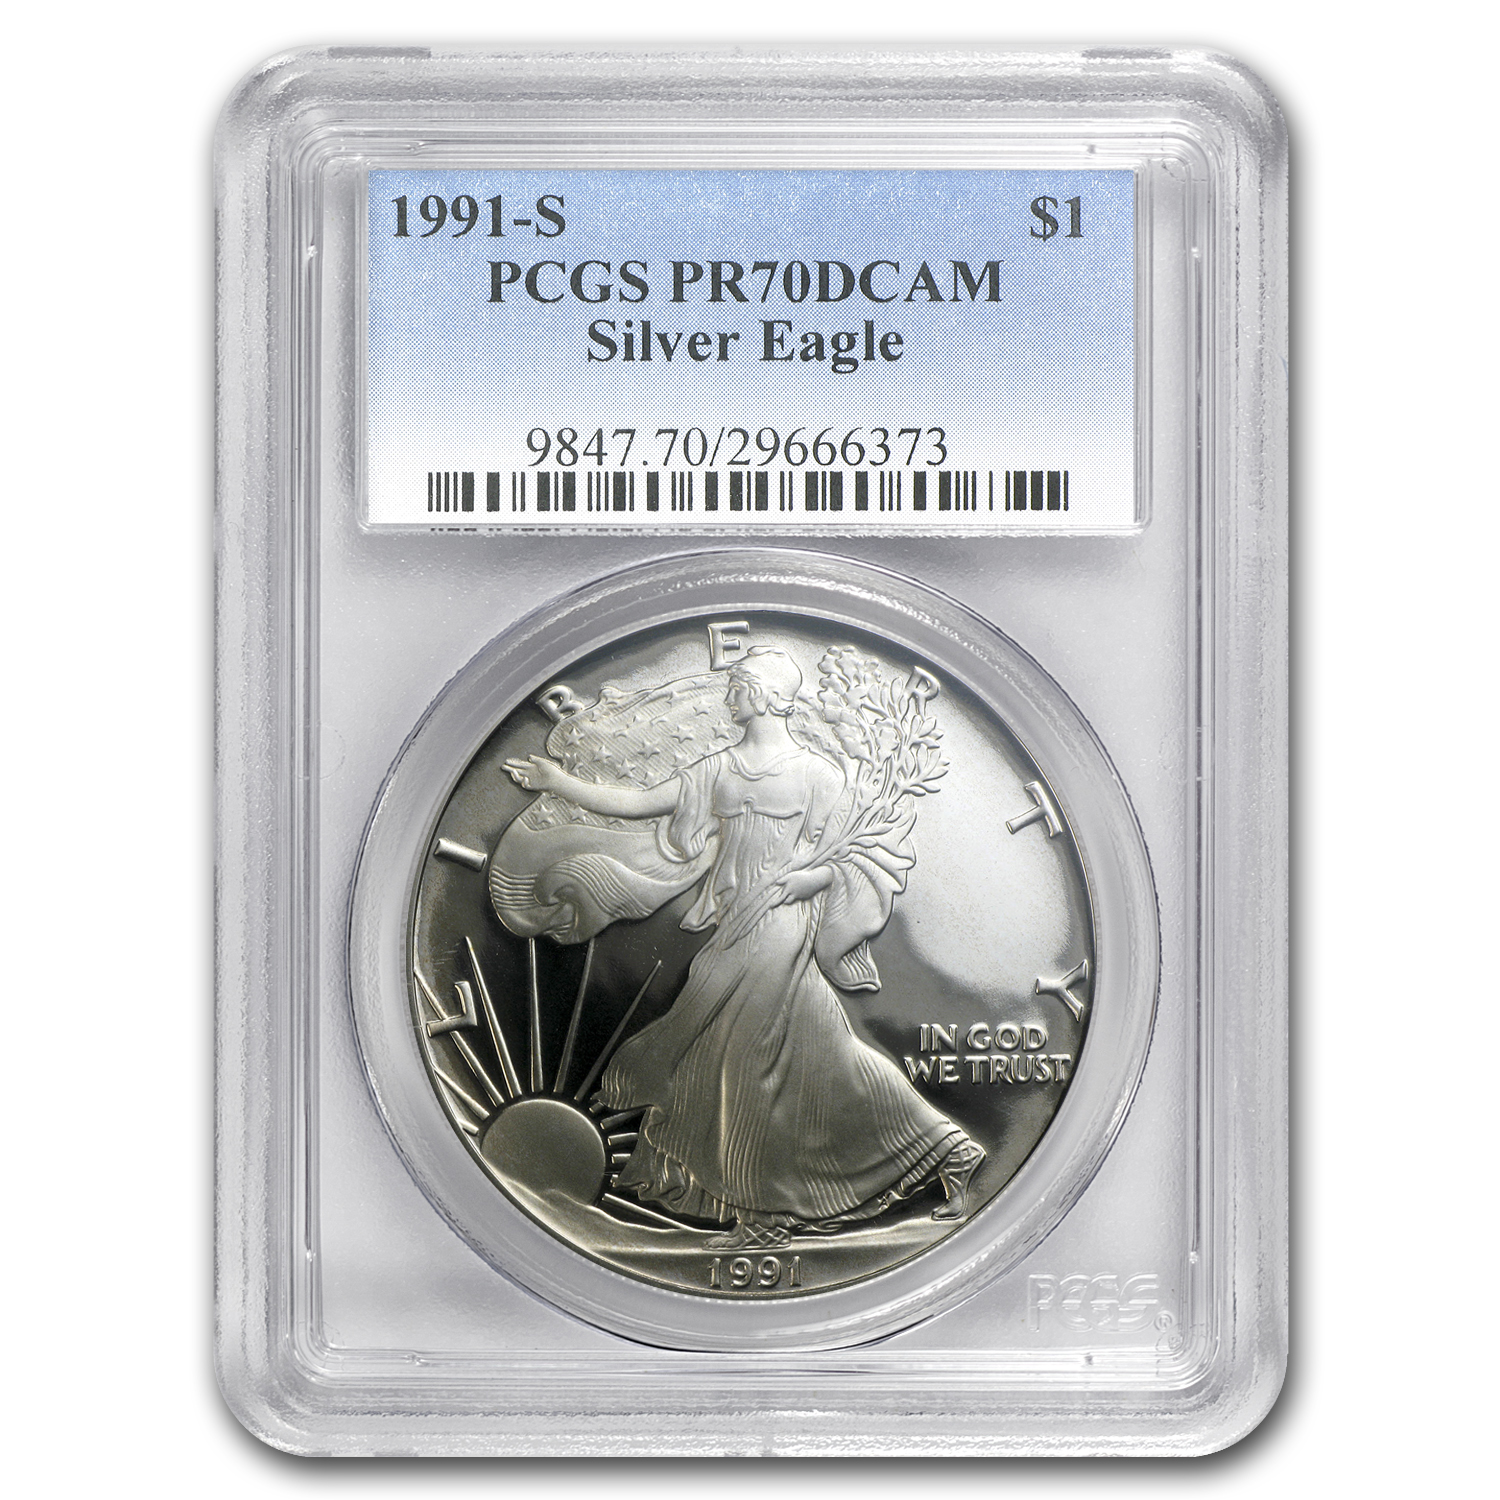 1991-S Proof Silver American Eagle PR-70 PCGS (Registry Set)